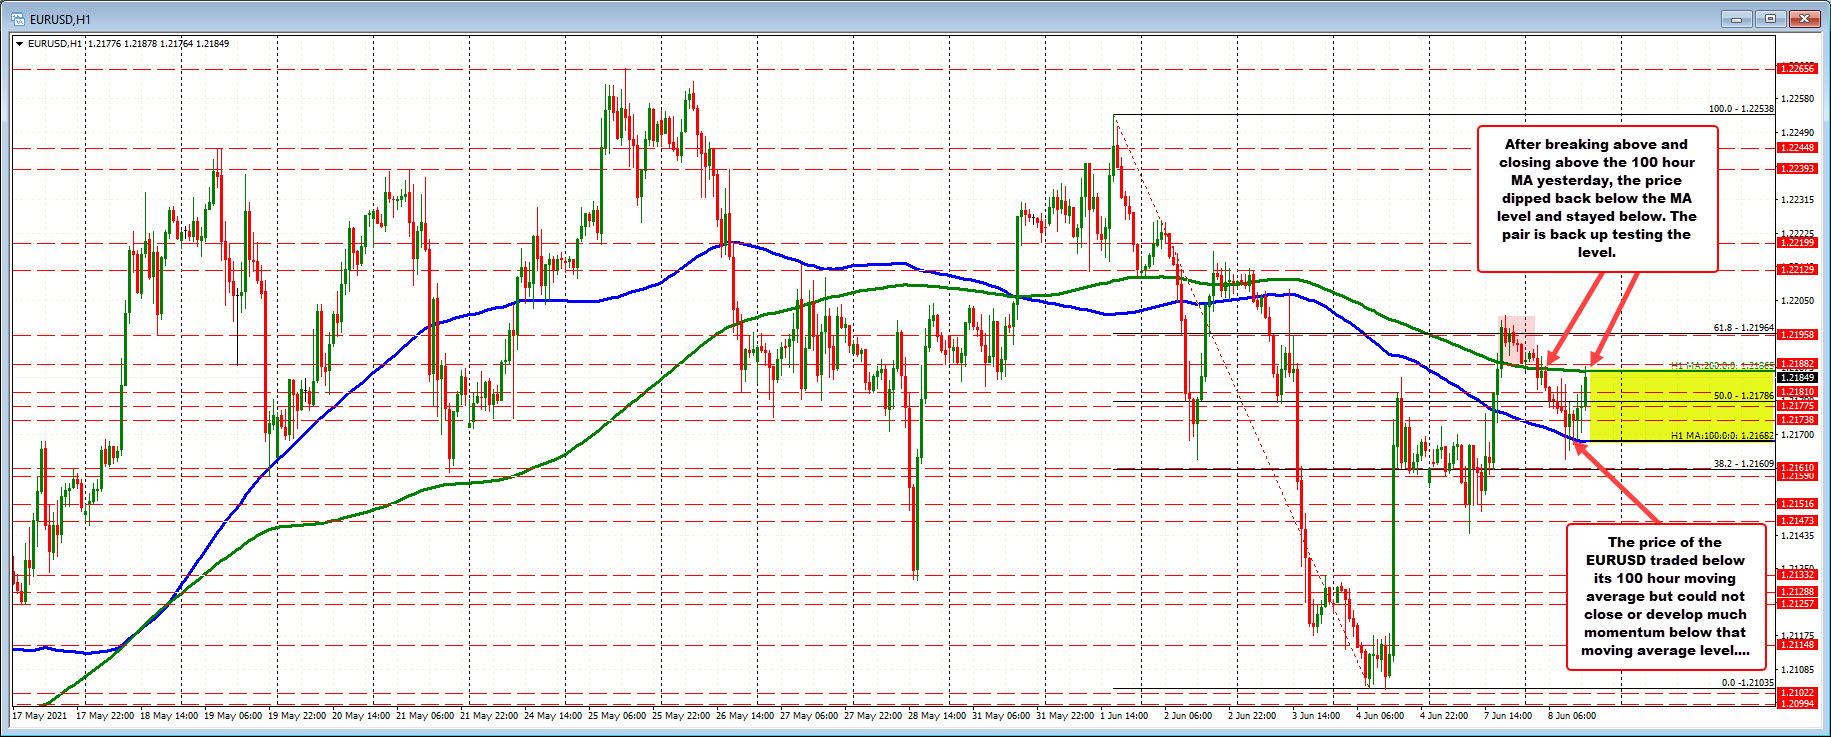 200 hour MA at 1.21865 and 100 hour MA at 1.21682.